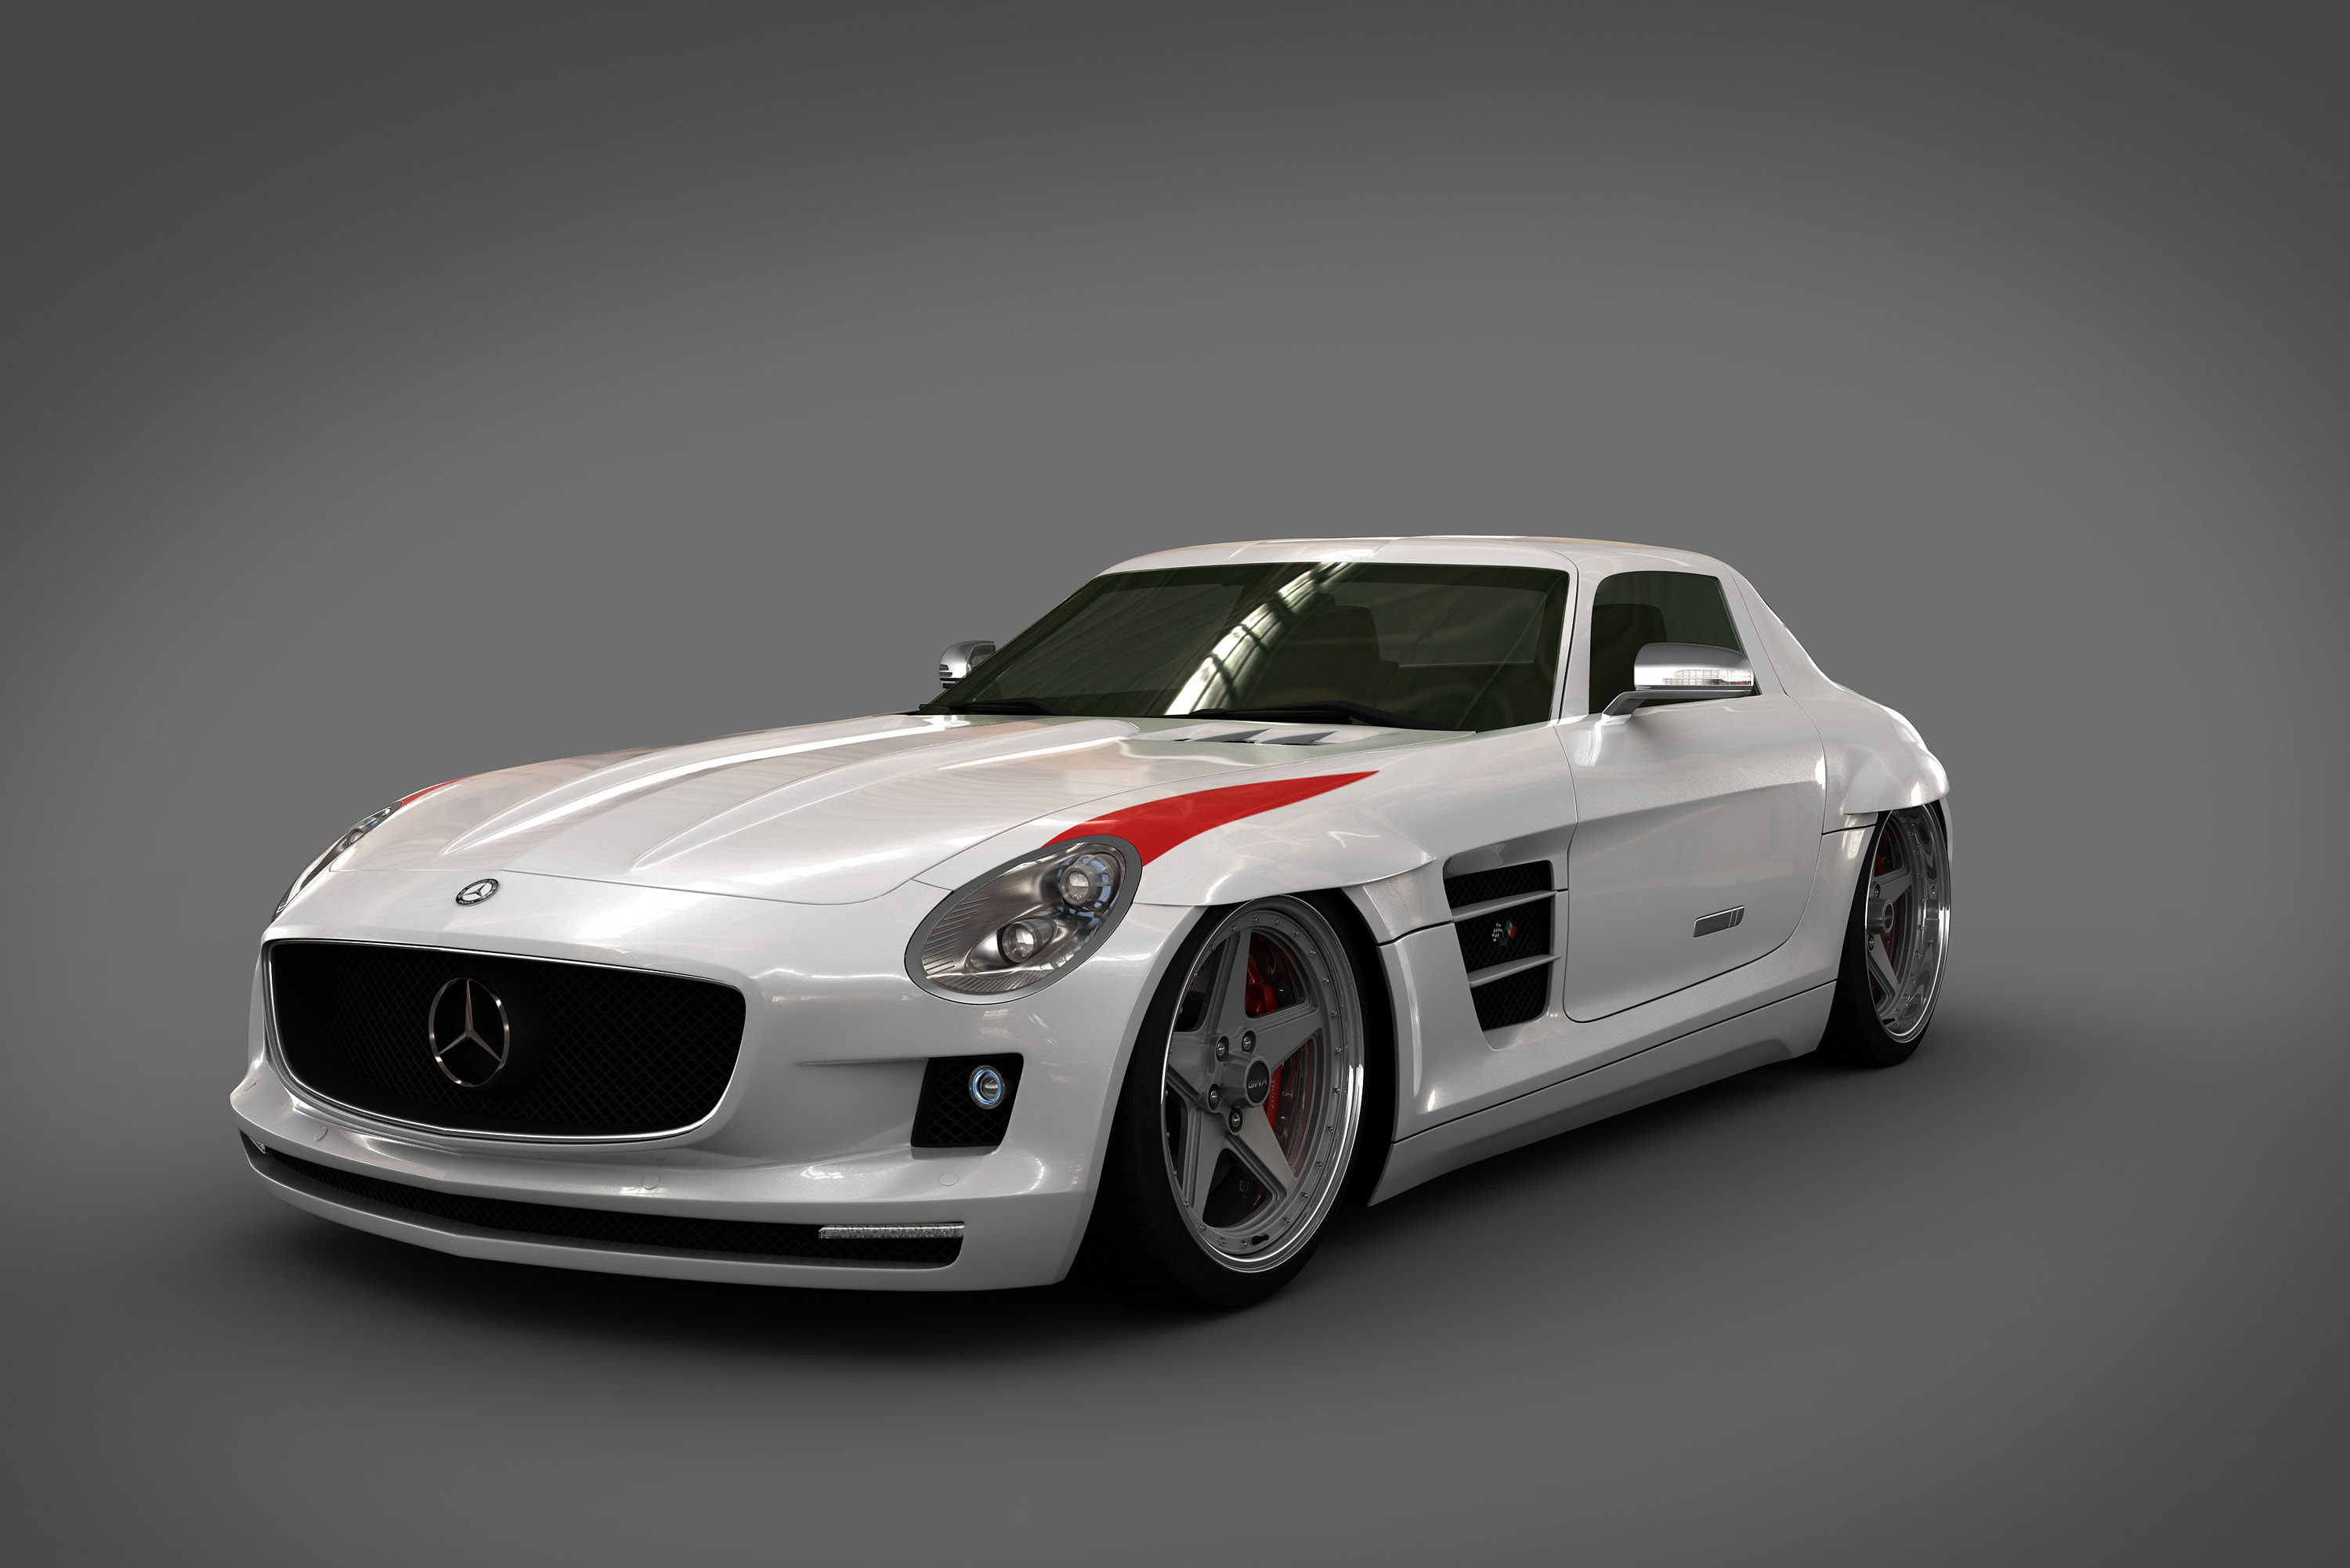 Sls Black Series >> GWA Panamericana styling kit for the 2010 Mercedes-Benz SLS